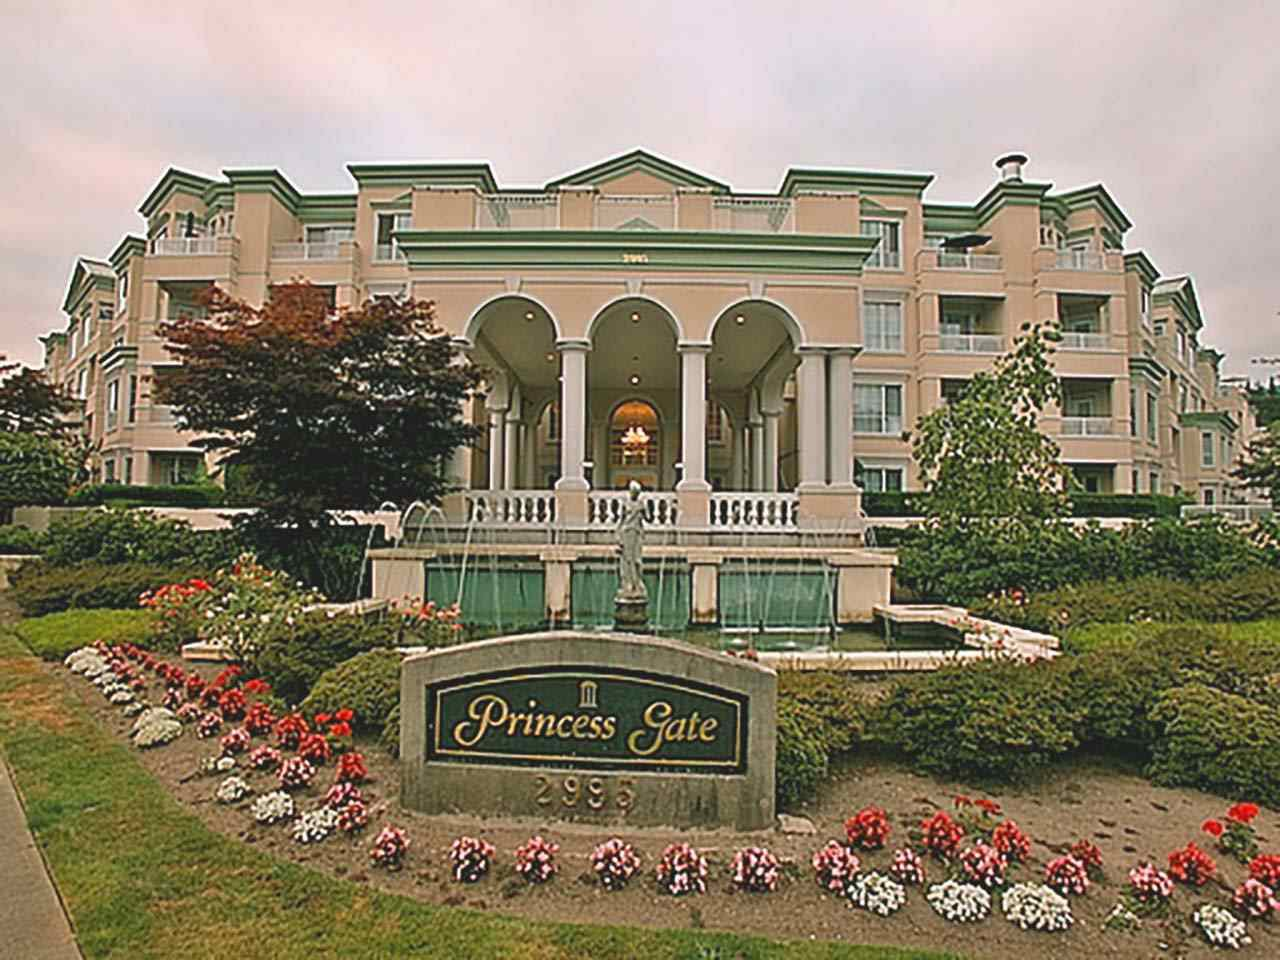 """Main Photo: 306 2995 PRINCESS Crescent in Coquitlam: Canyon Springs Condo for sale in """"PRINCESS GATE"""" : MLS®# R2402448"""